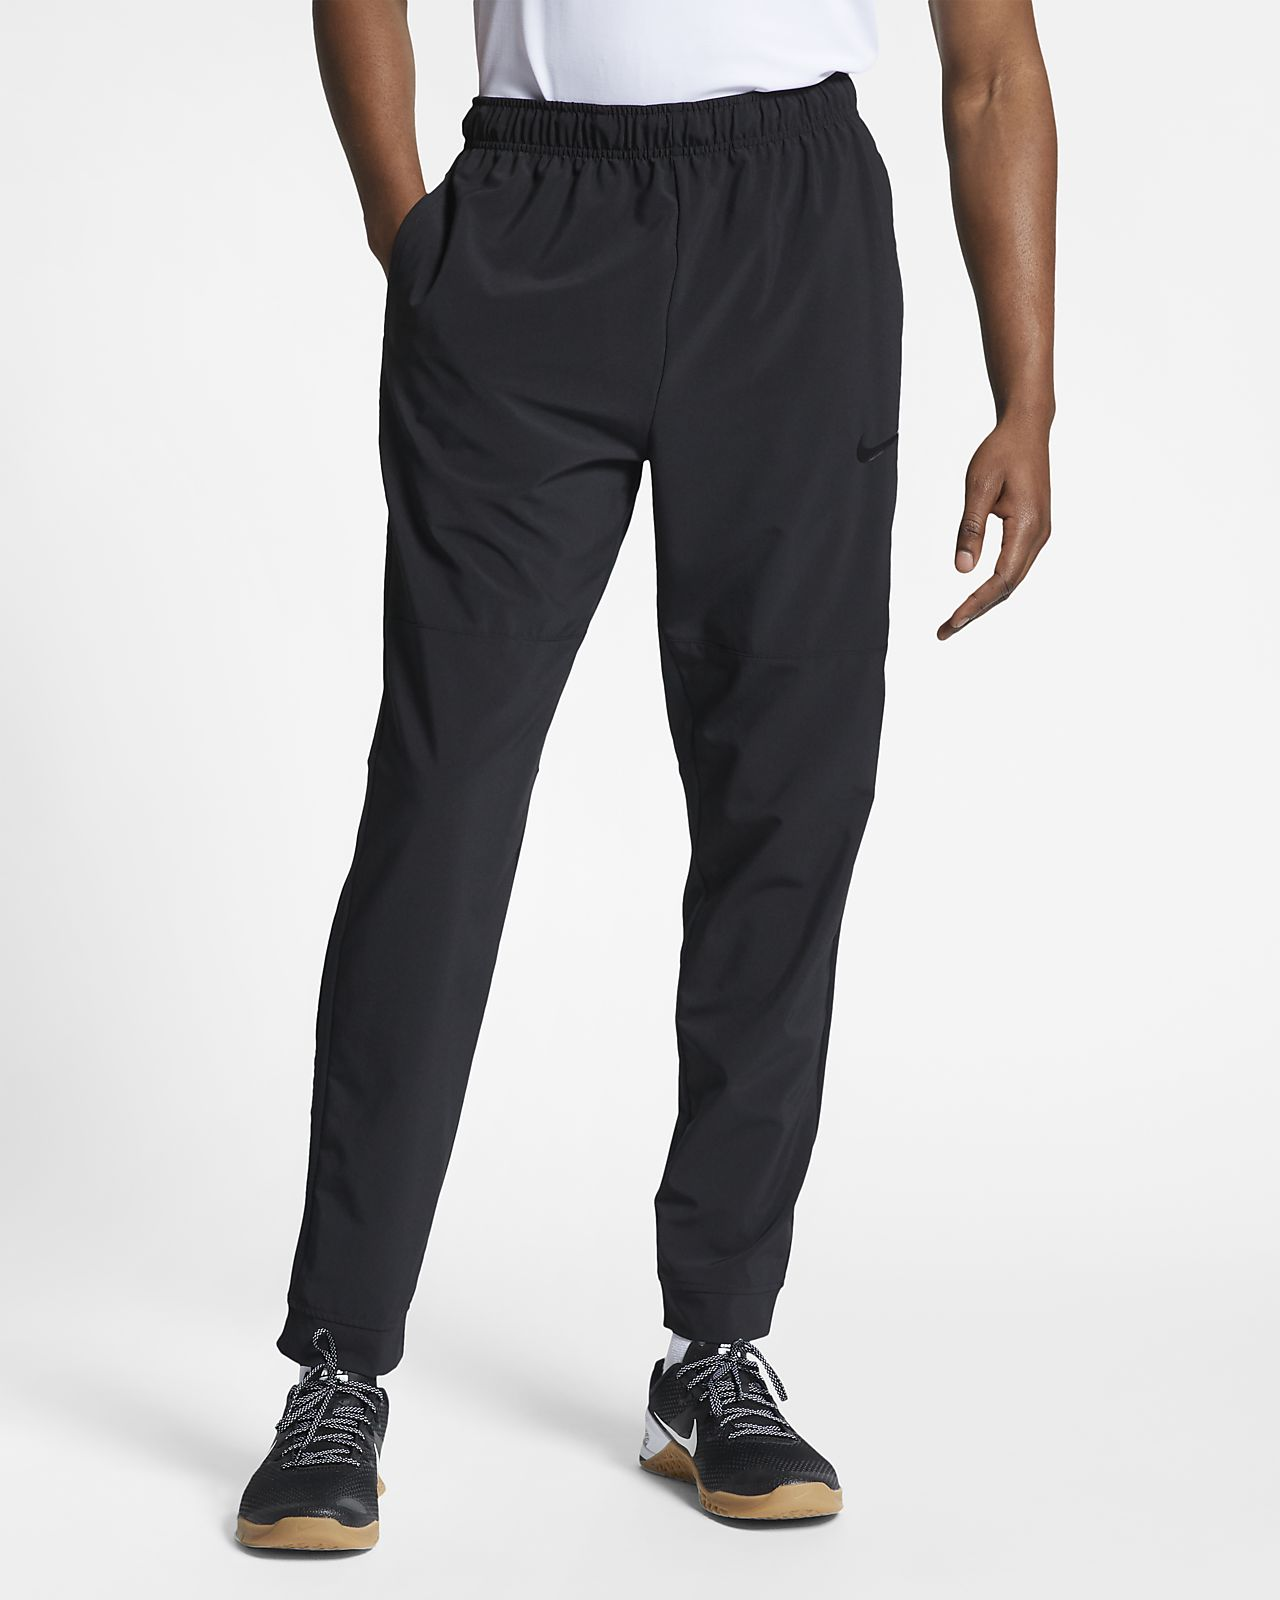 Nike Dri-FIT Herren-Trainingshose